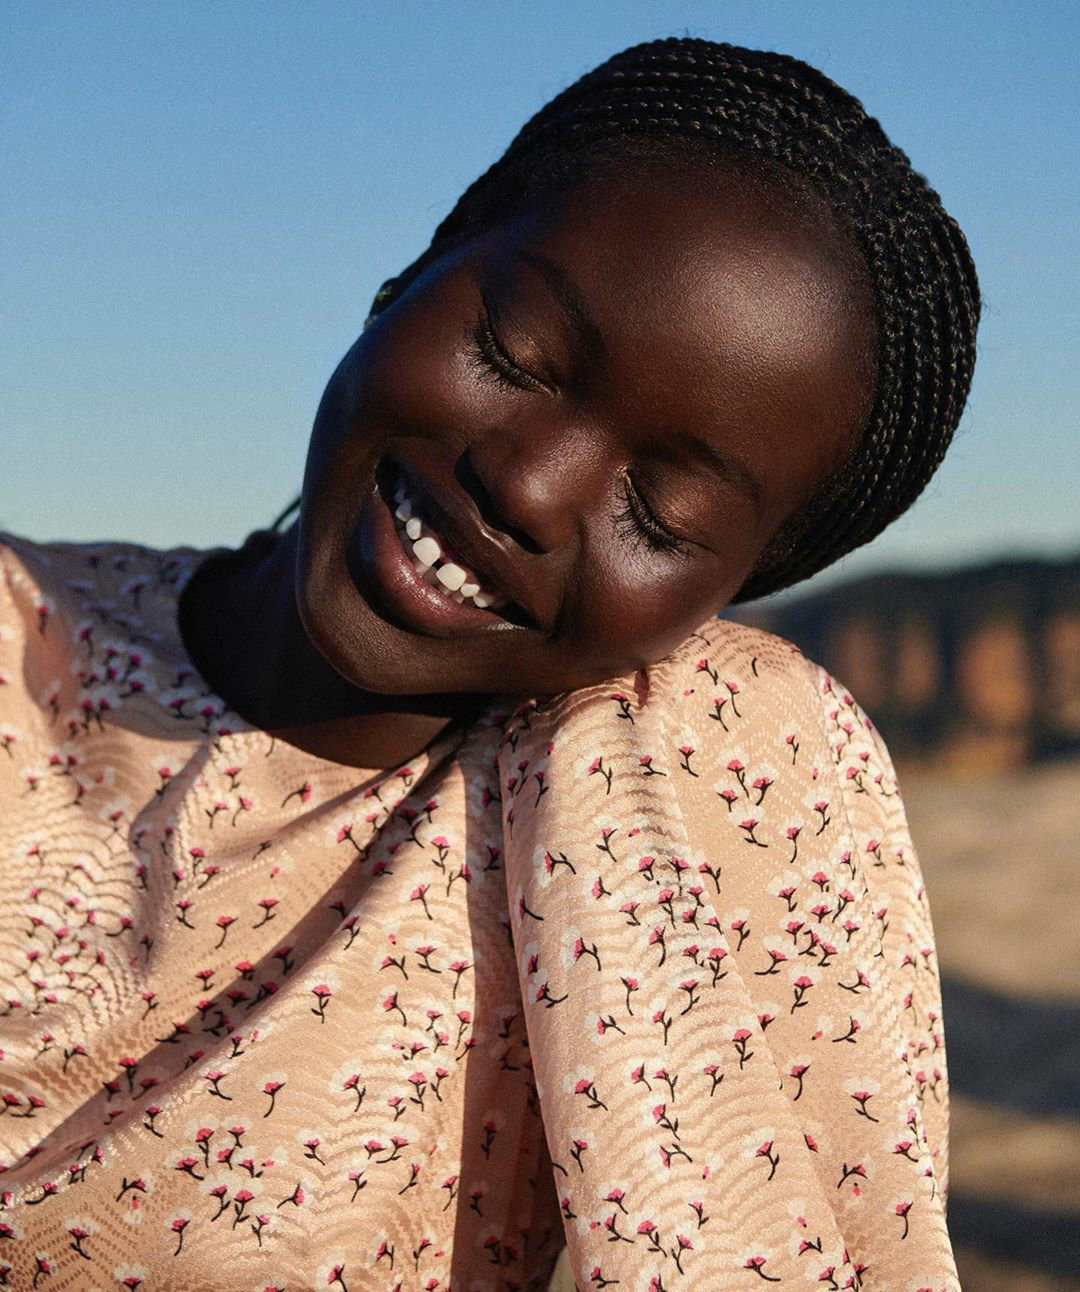 3adut akech shines in david jones spring 2020 campaign proves she looks good in everything2123603517476640500